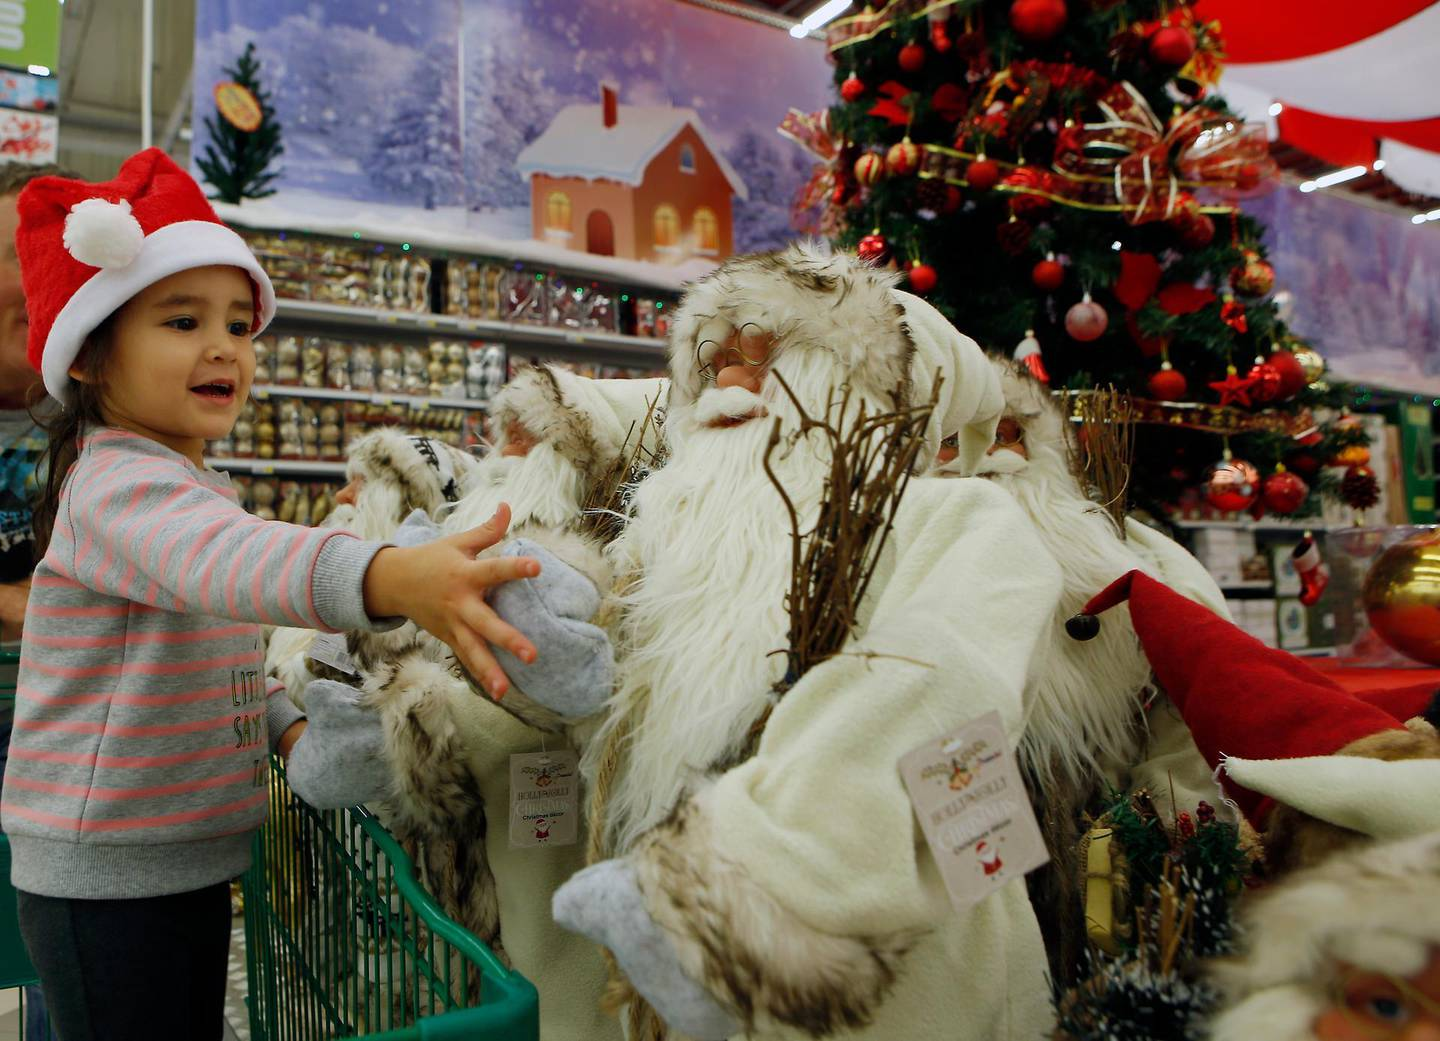 ABU DHABI - UNITED ARAB EMIRATES - 23DEC 2016 - May Ray McCormick 3 years old with her father Daniel McCormick doing her last minute Christmas shopping at Yas Mall in Abu Dhabi. Ravindranath K / The National ID: 31265 (to go with Haneen Al Dajani story for News) *** Local Caption ***  RK2312-ChristmasShopping04.jpg